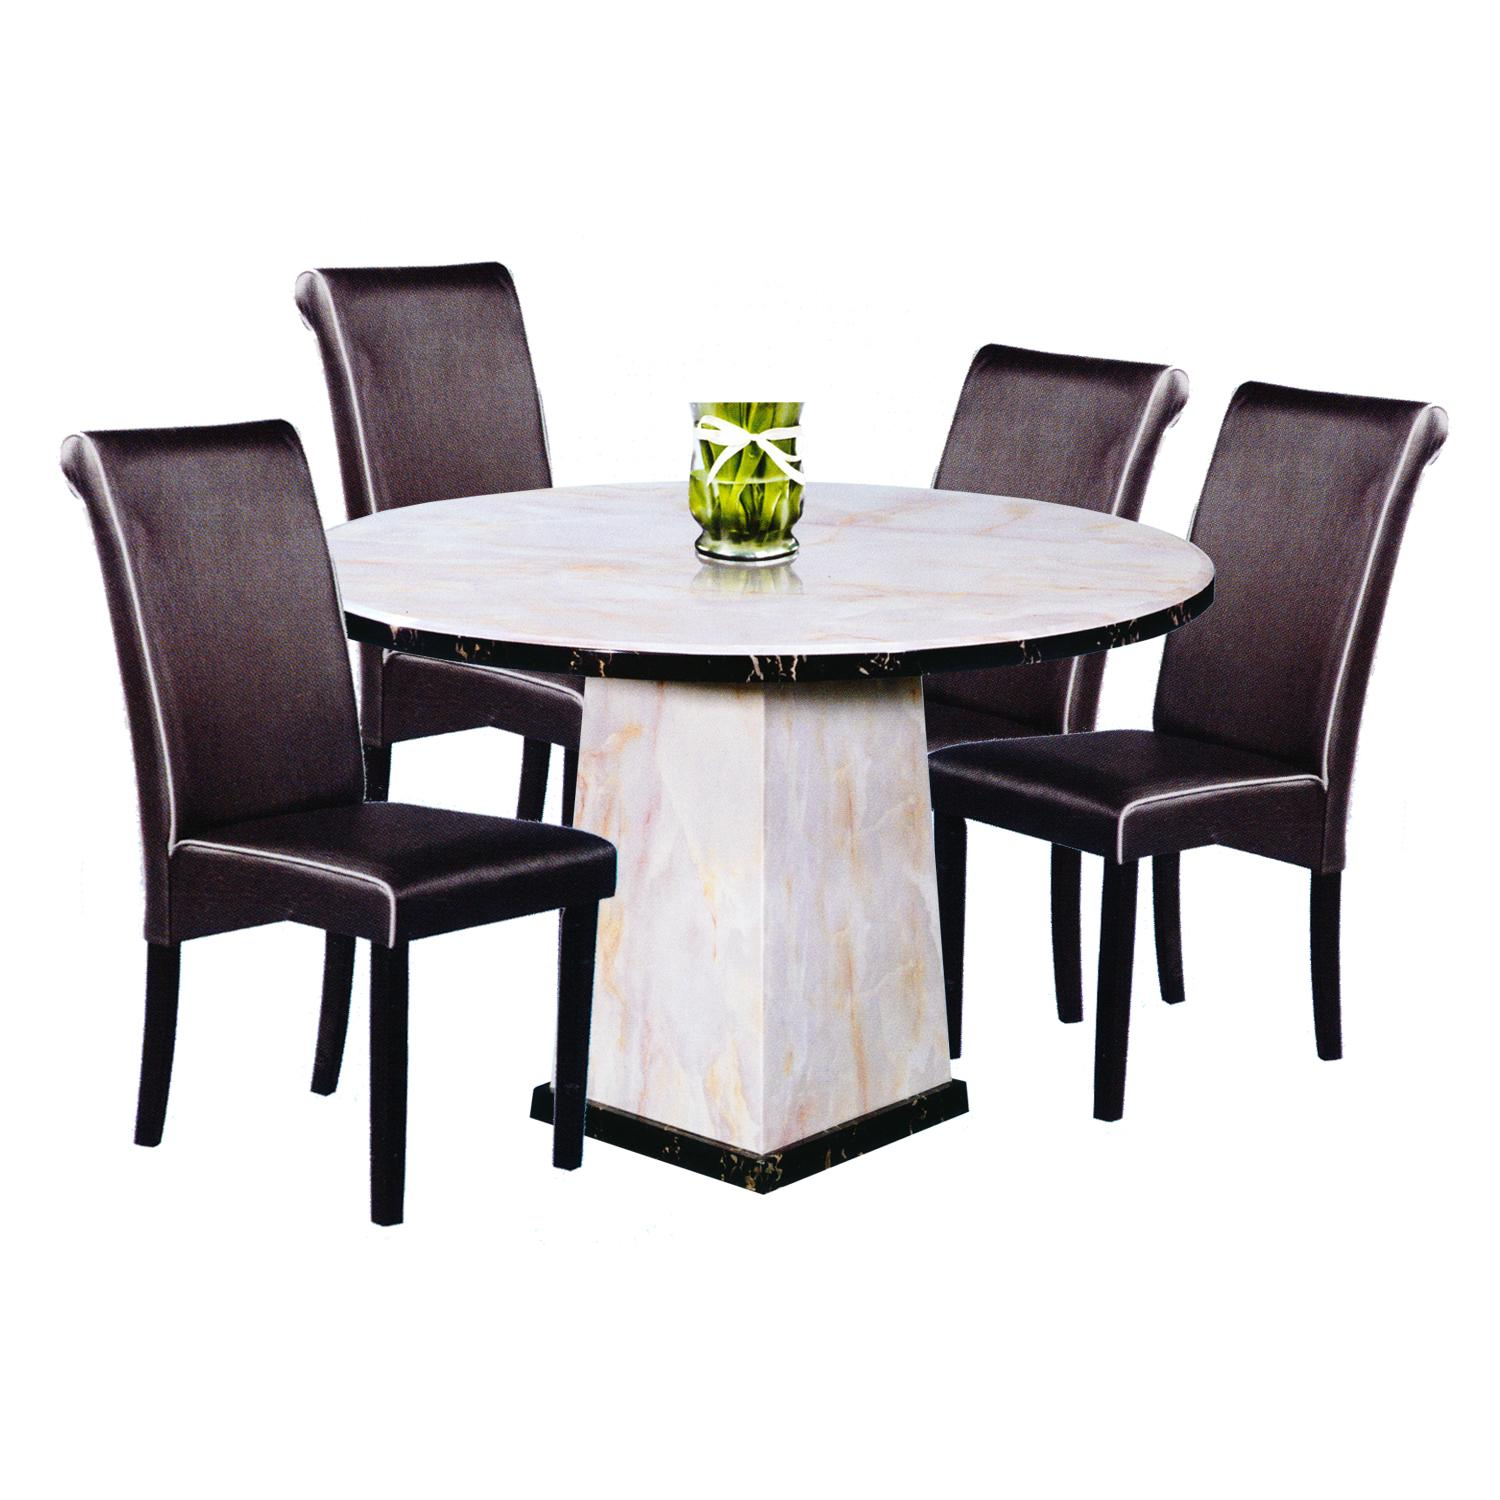 VIJAYA / BARRY Marble Top 1+4 Dining Set